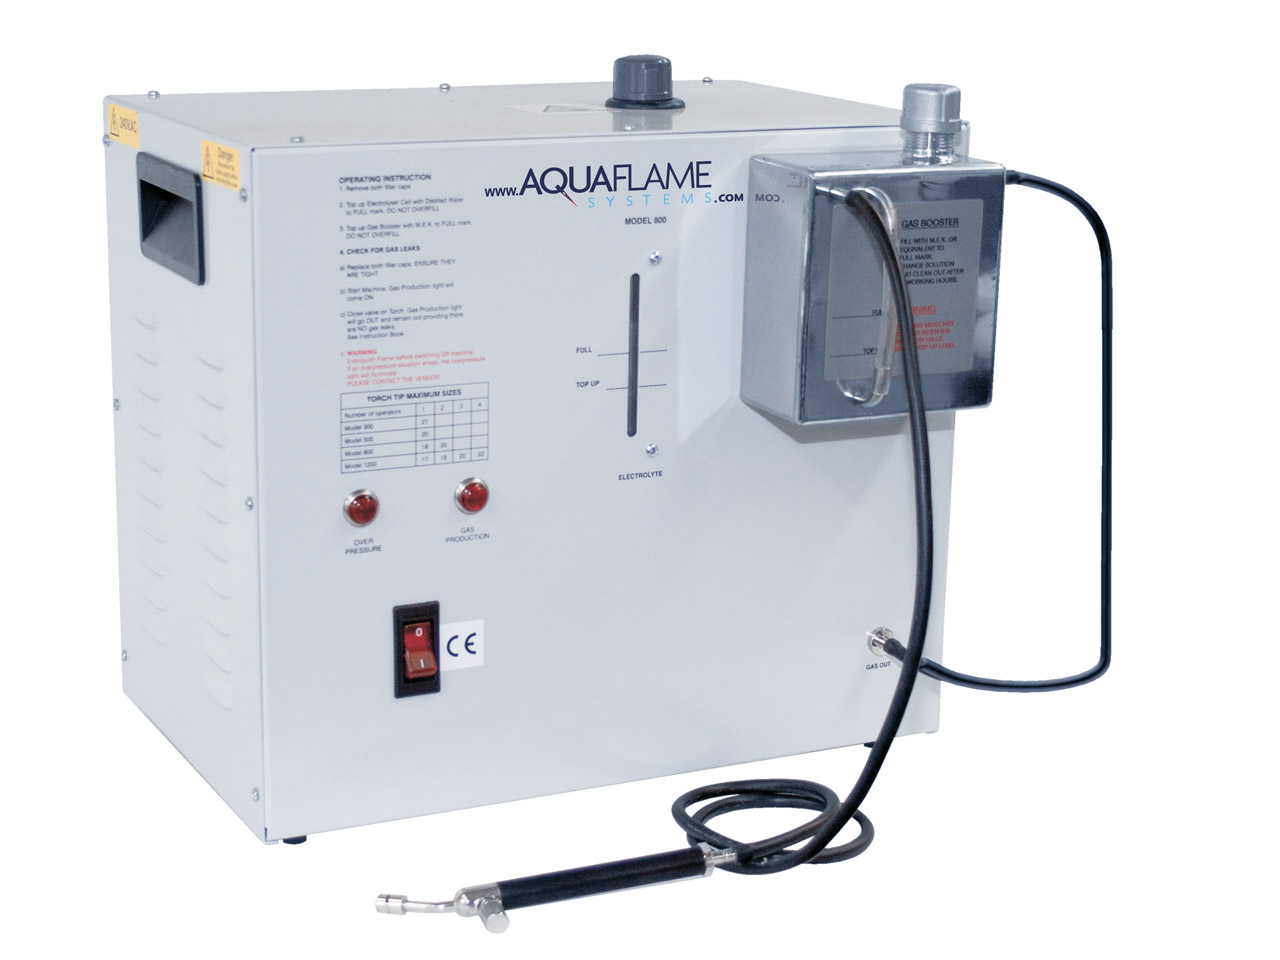 Aquaflame Micro Welder, Model 800  Un1813